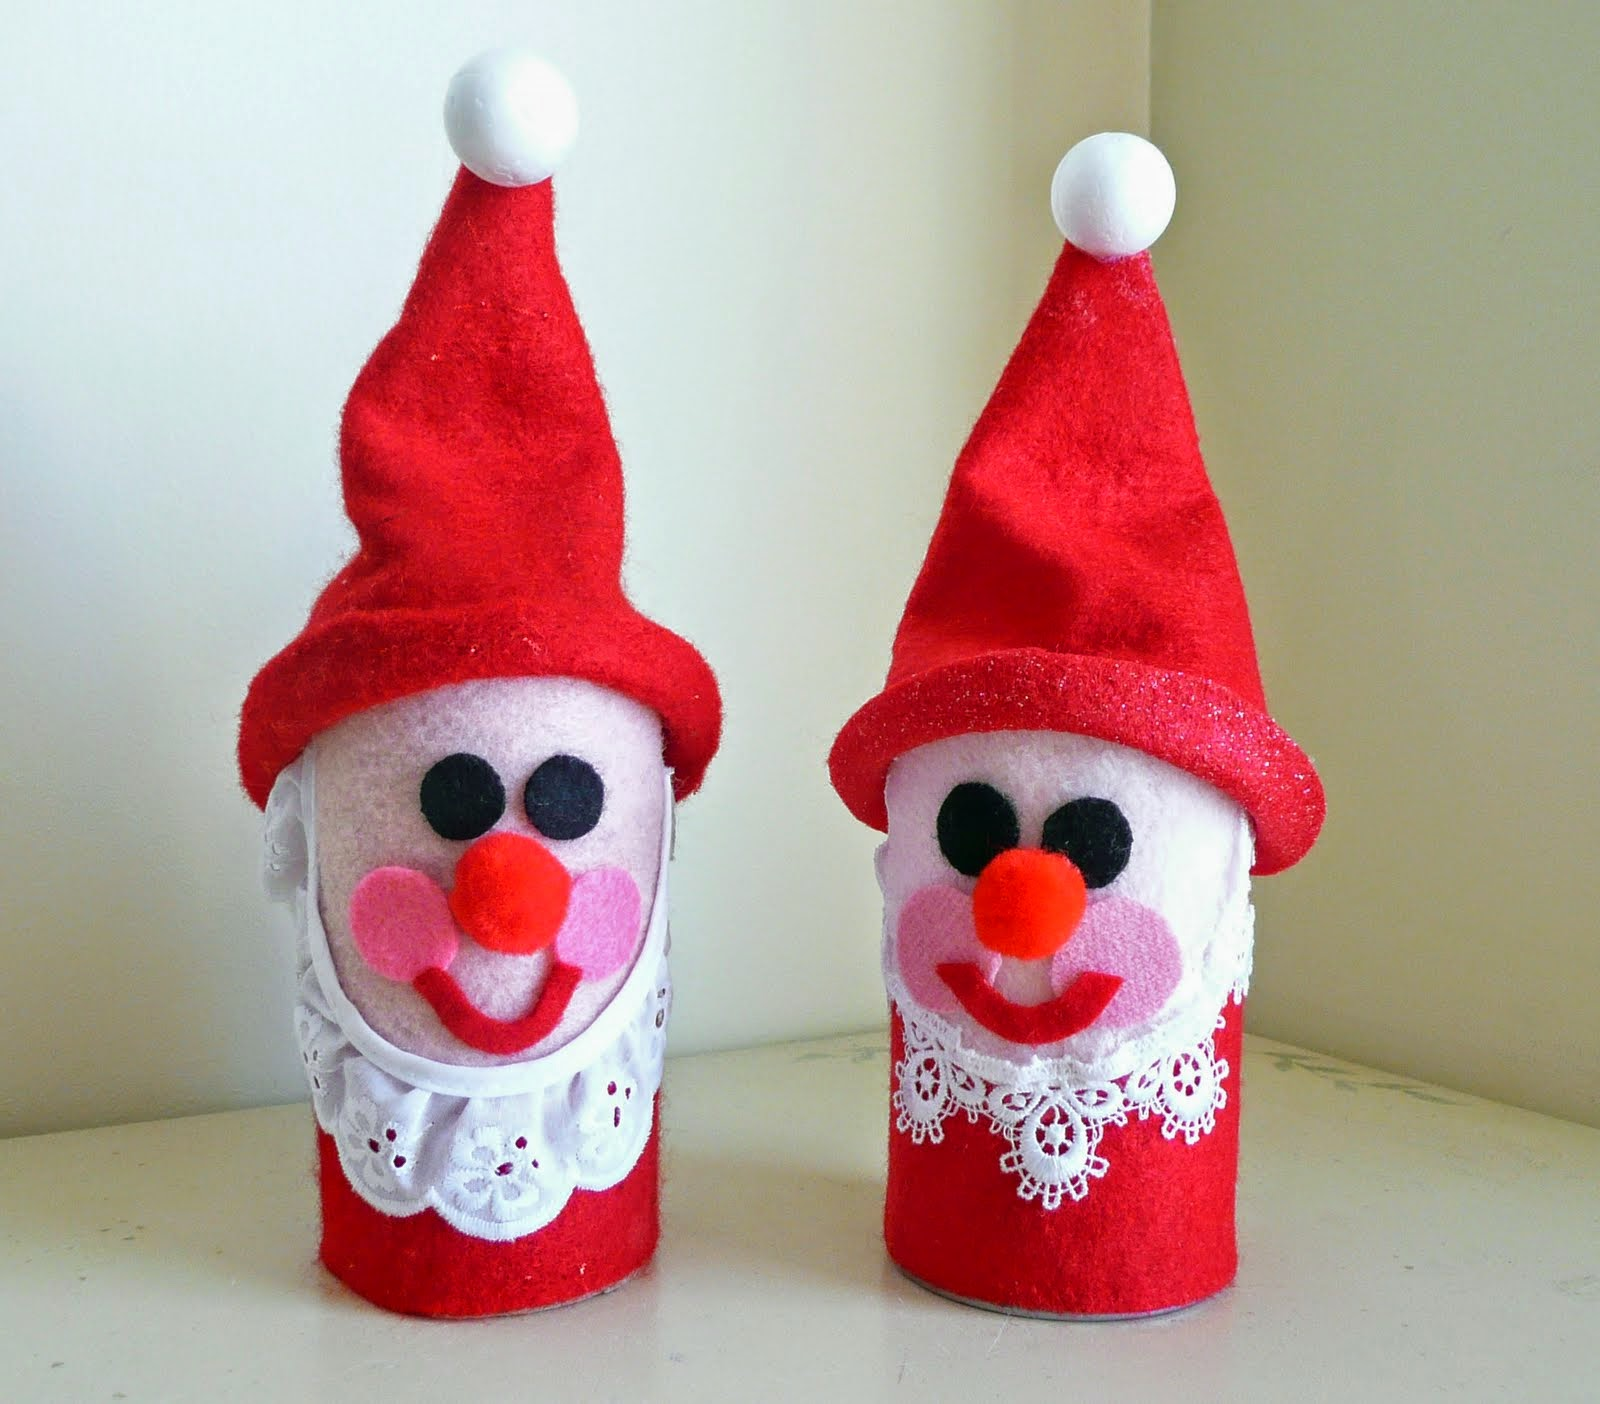 Christmas Craft From Toilet Paper Rolls